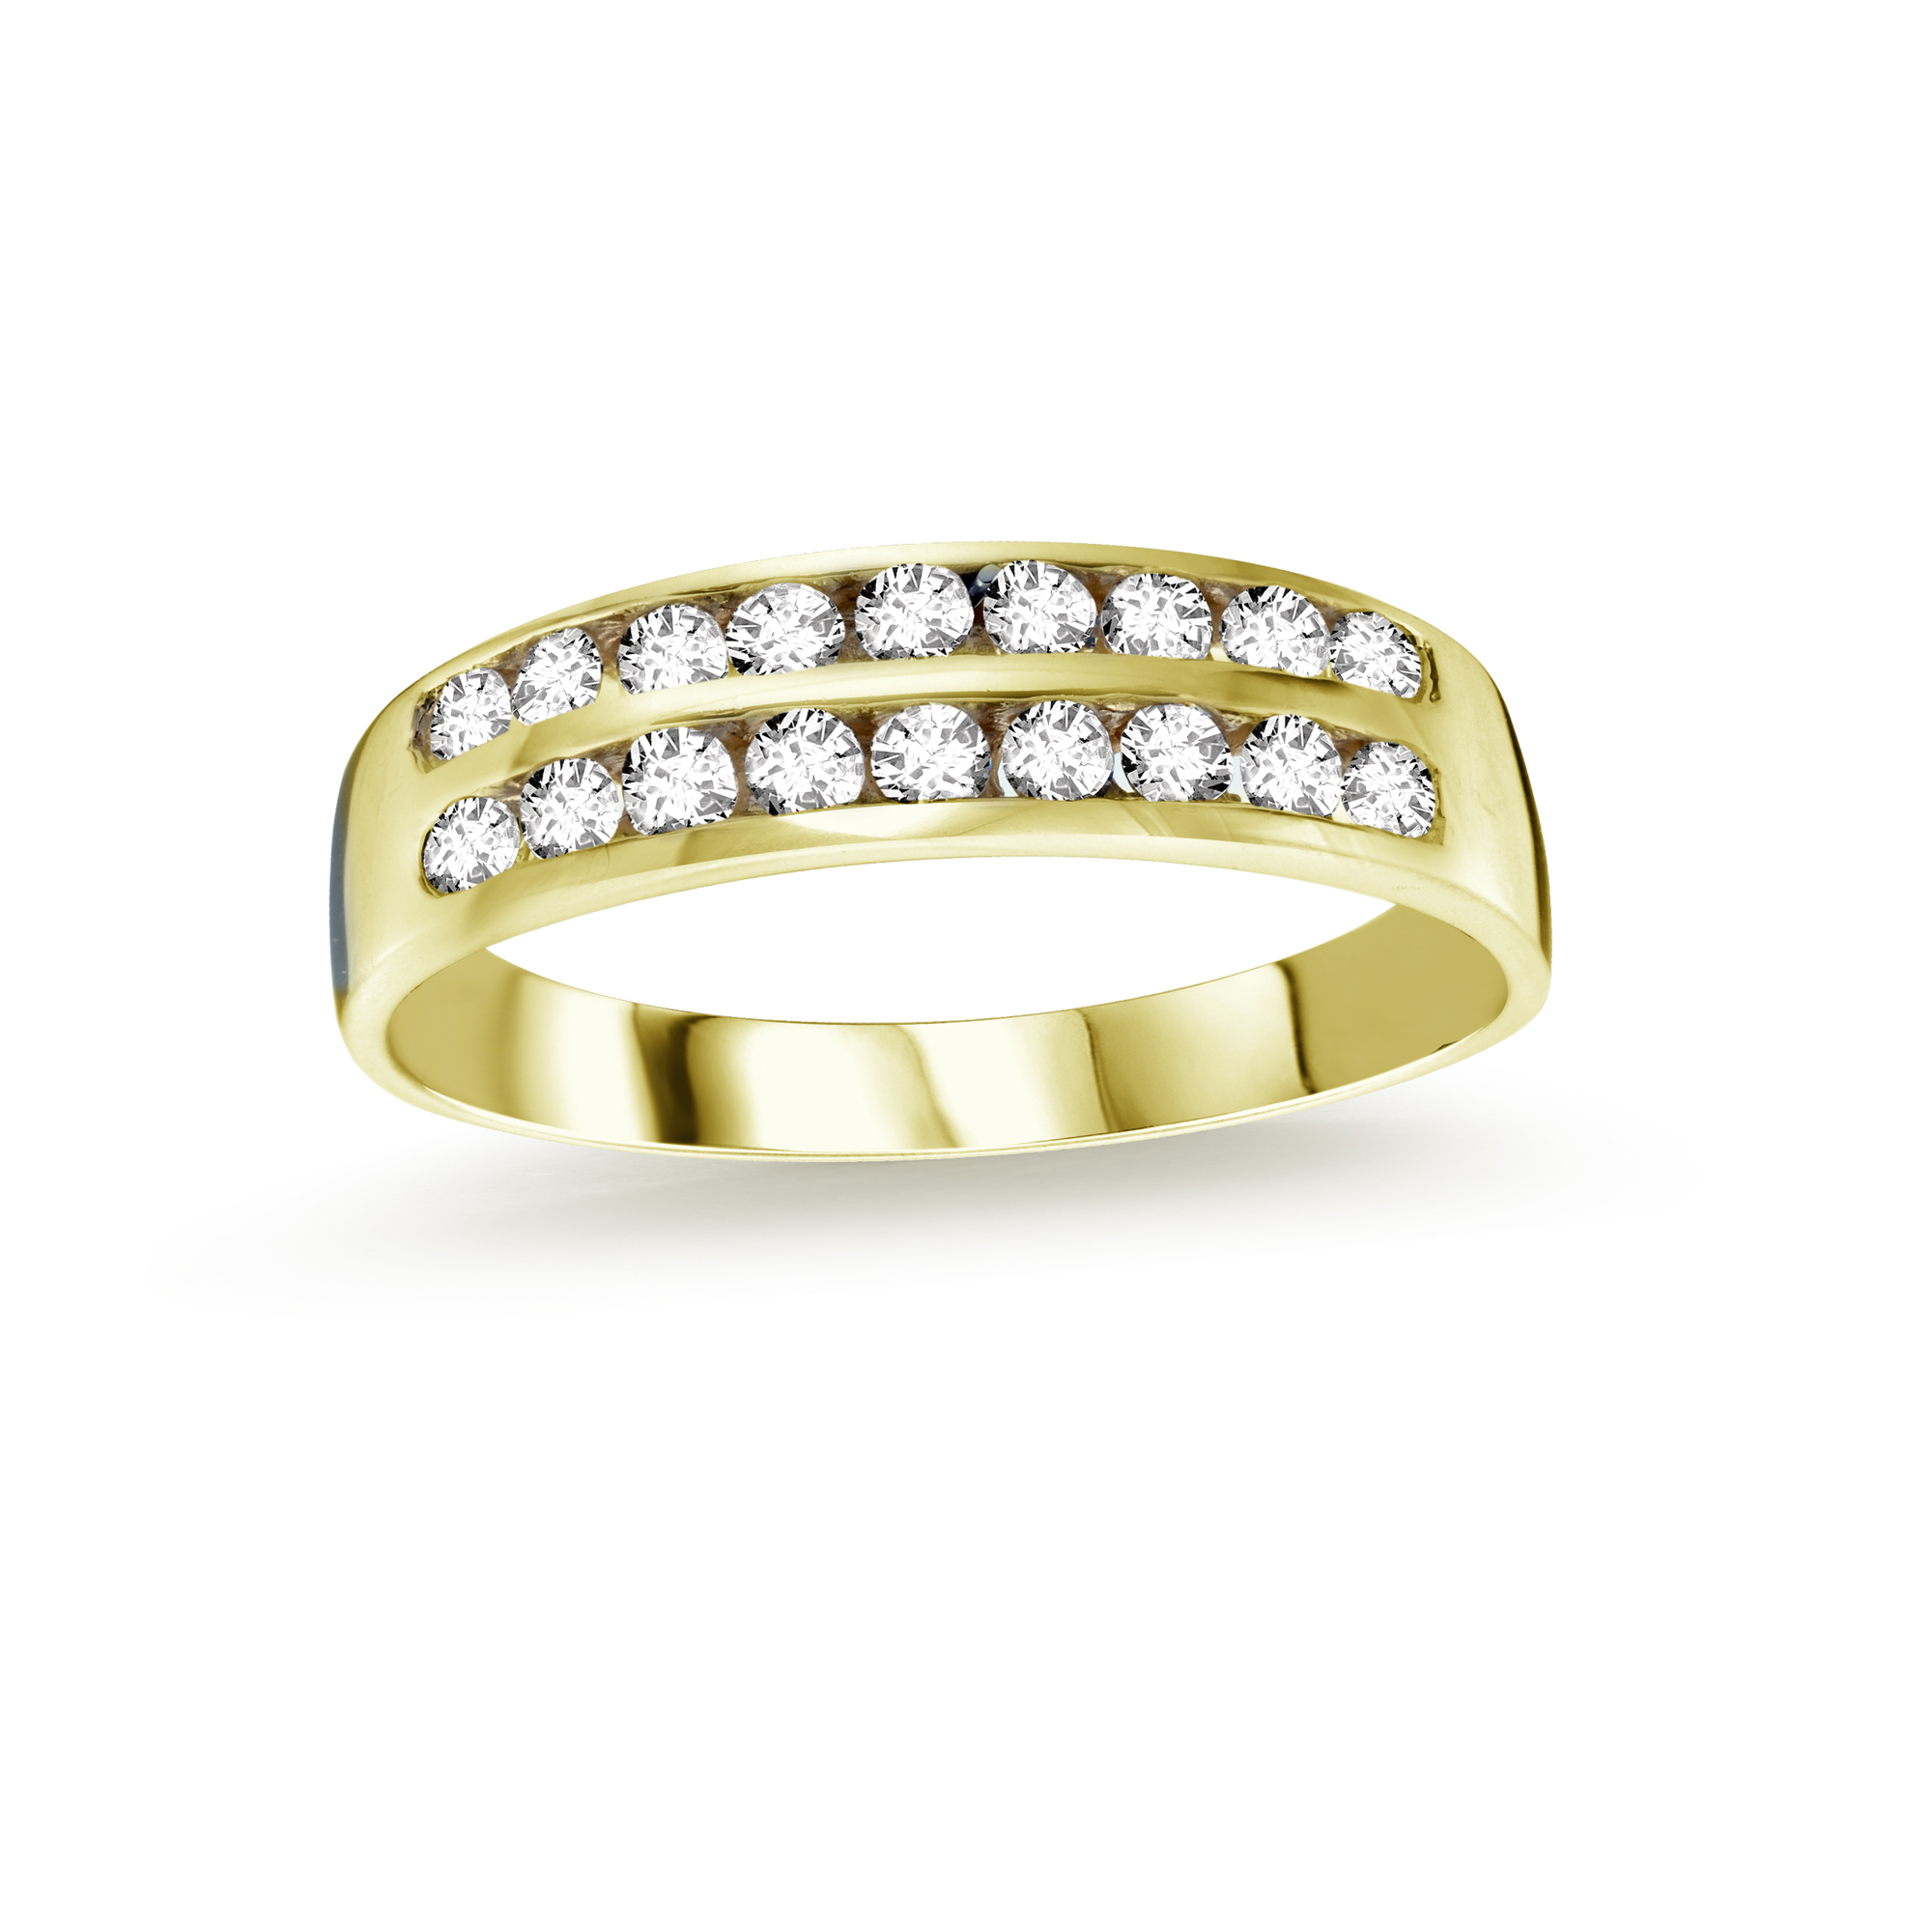 Band with multiple cubic zirconia - 10K yellow Gold